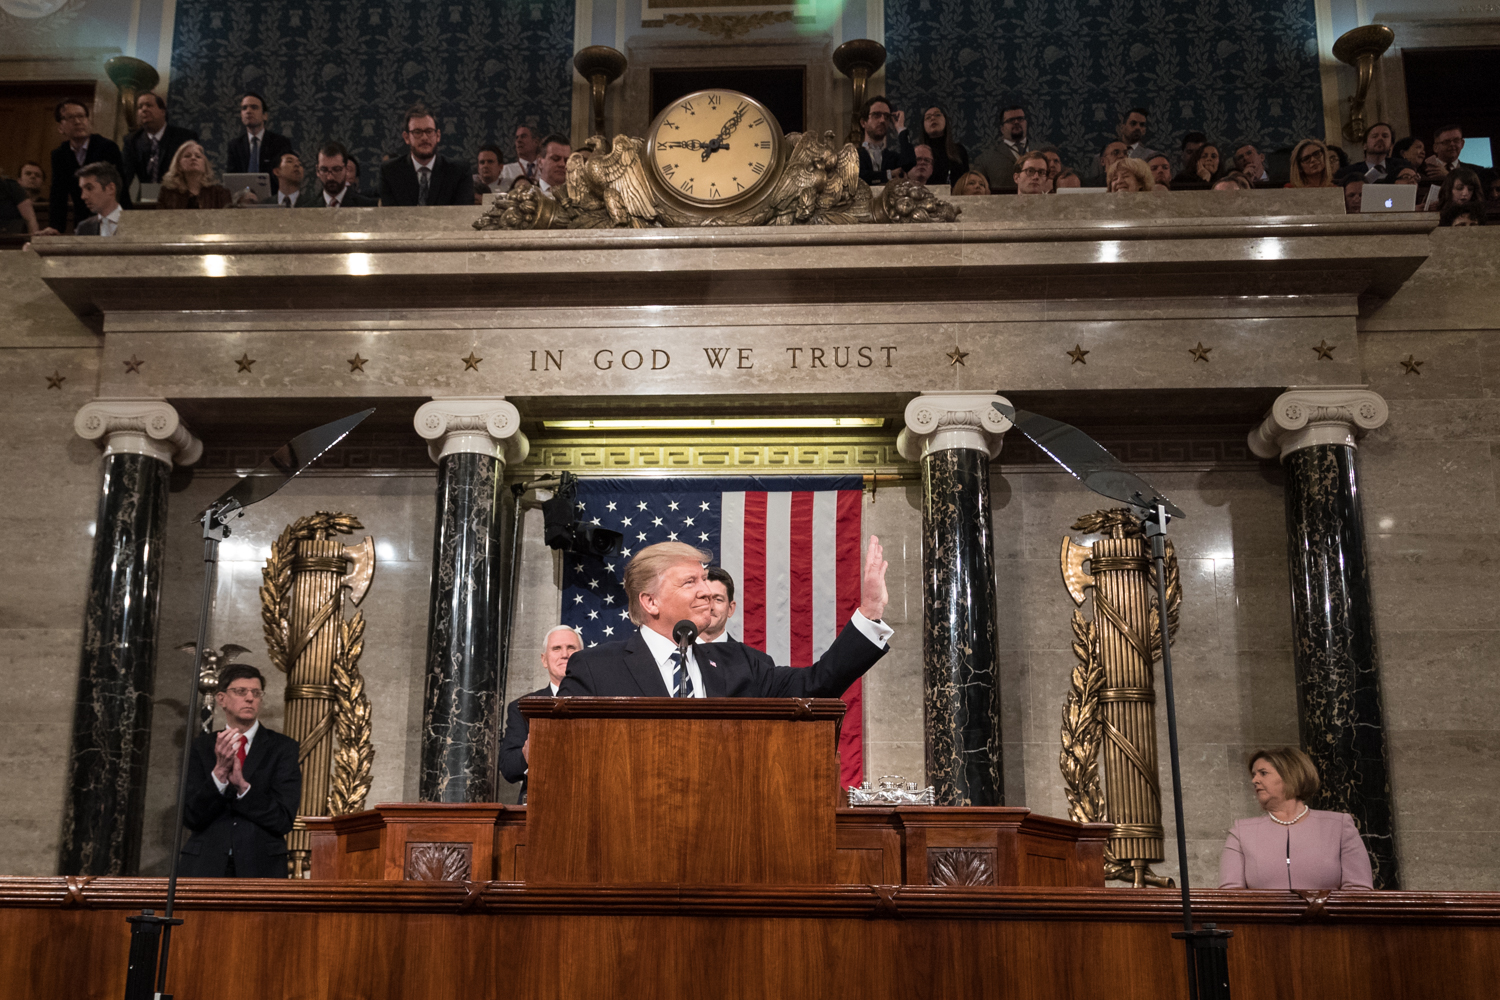 Trump State of the Union 2018